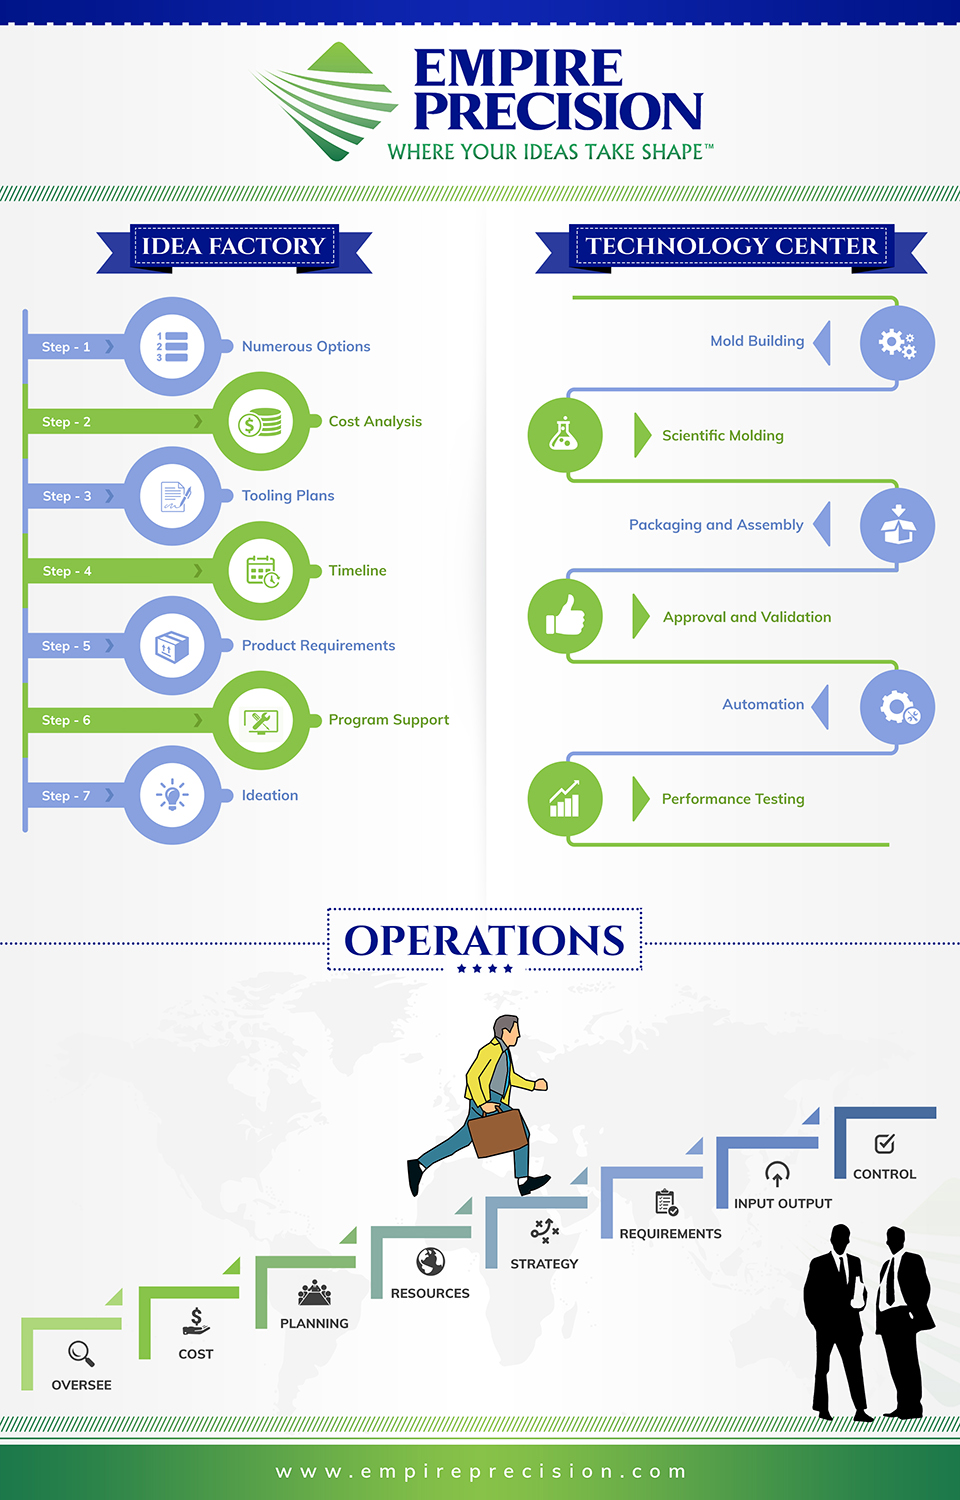 Bold Serious Manufacturing Infographic Design For Empire Precision